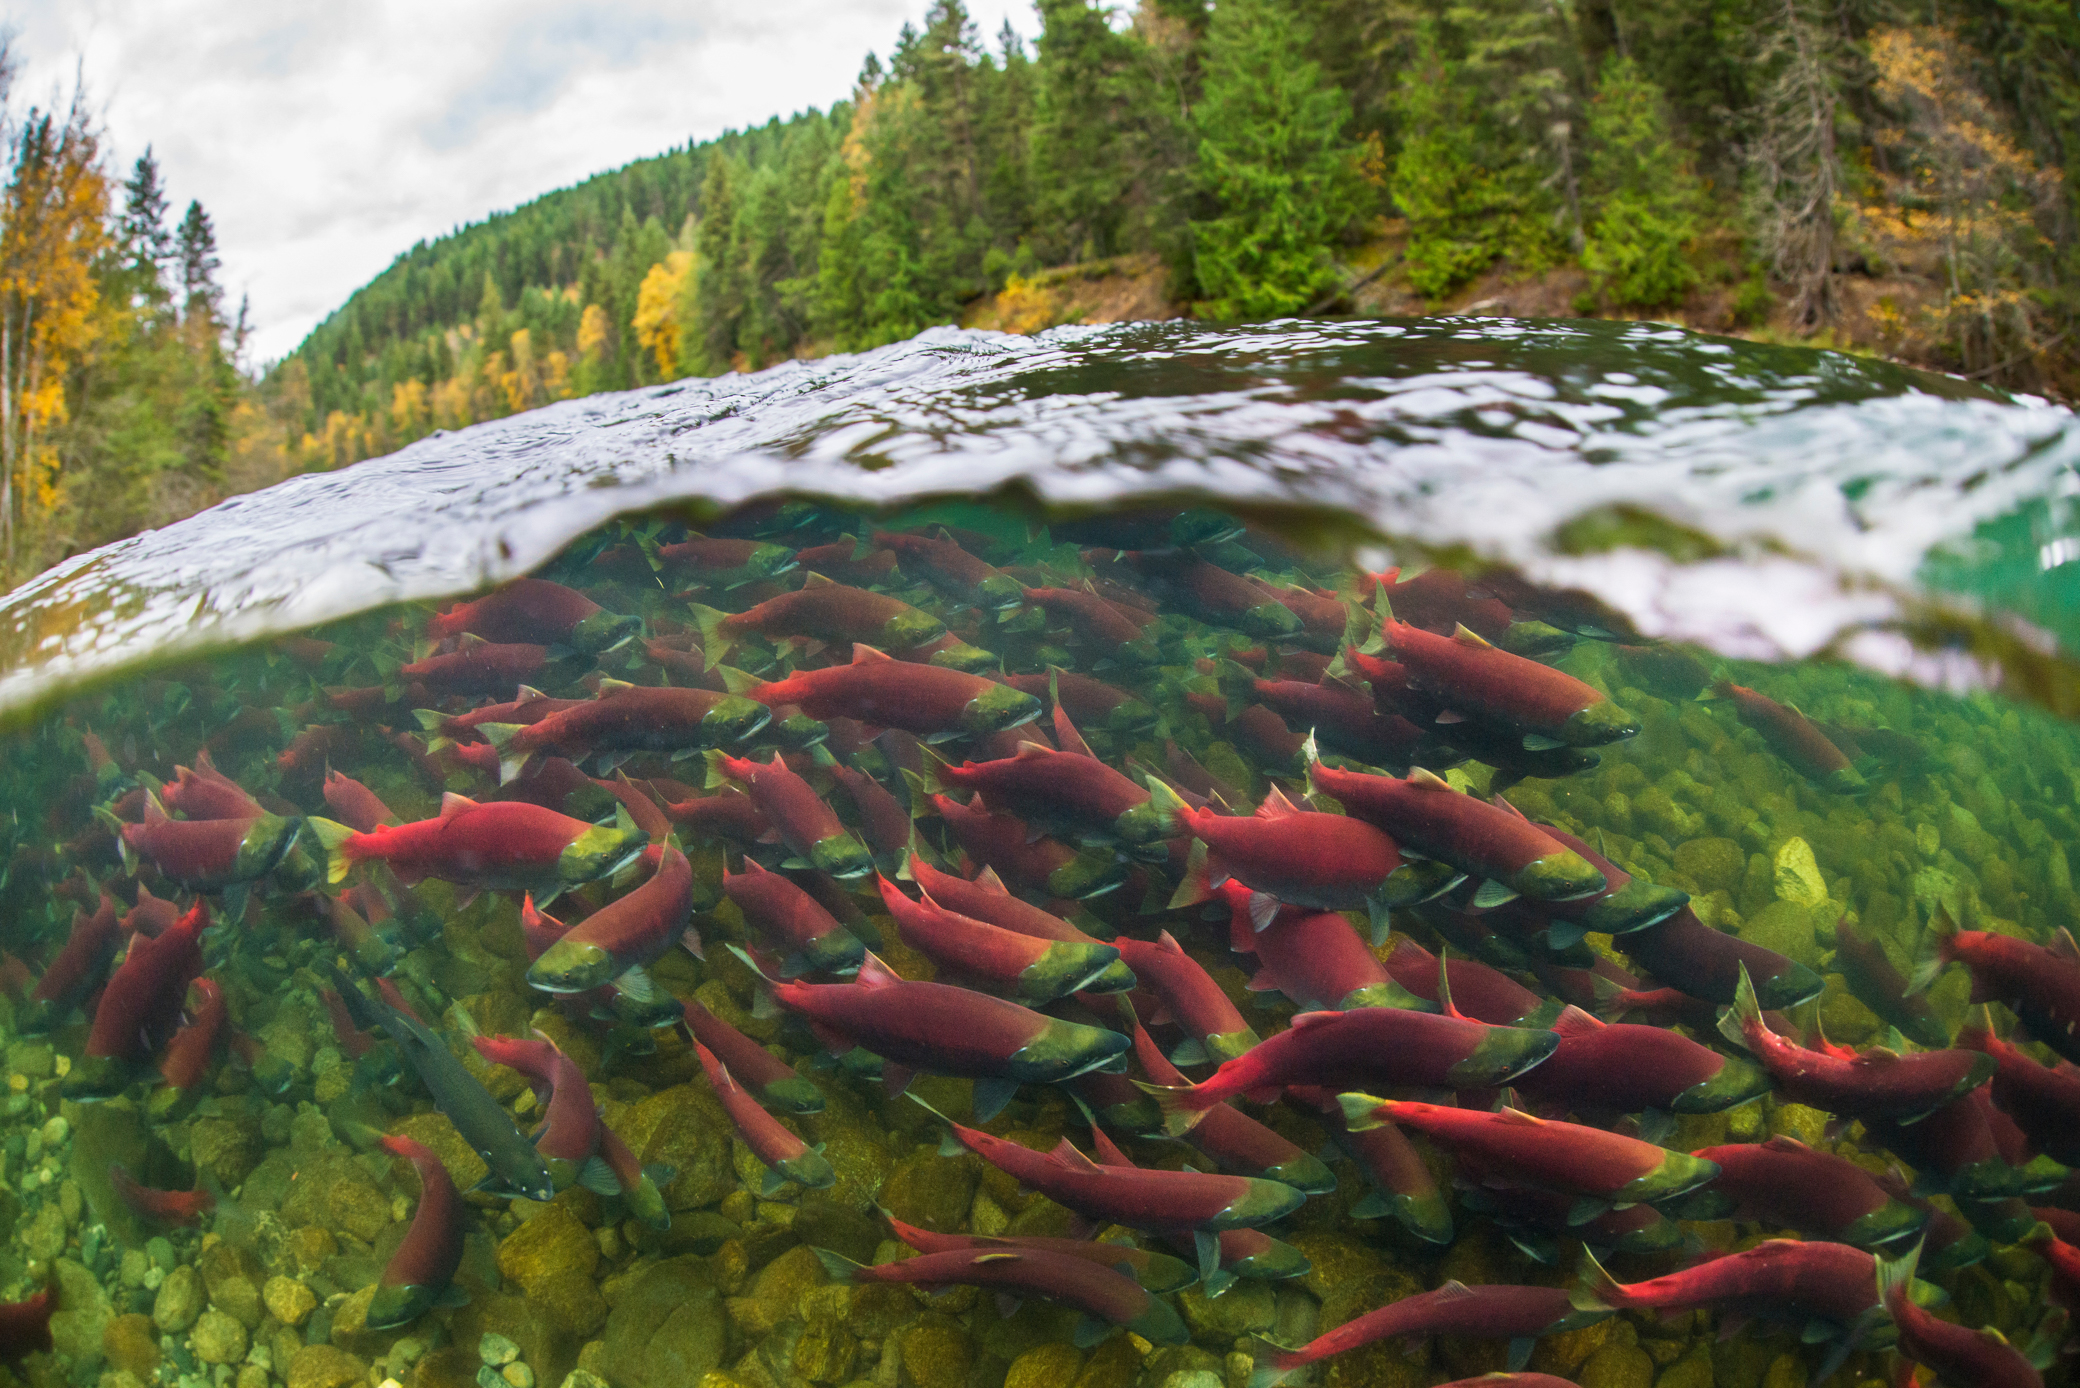 Adult sockeye salmon make their way up the Fraisier River in British Columbia. Photo by Tavish Campbell